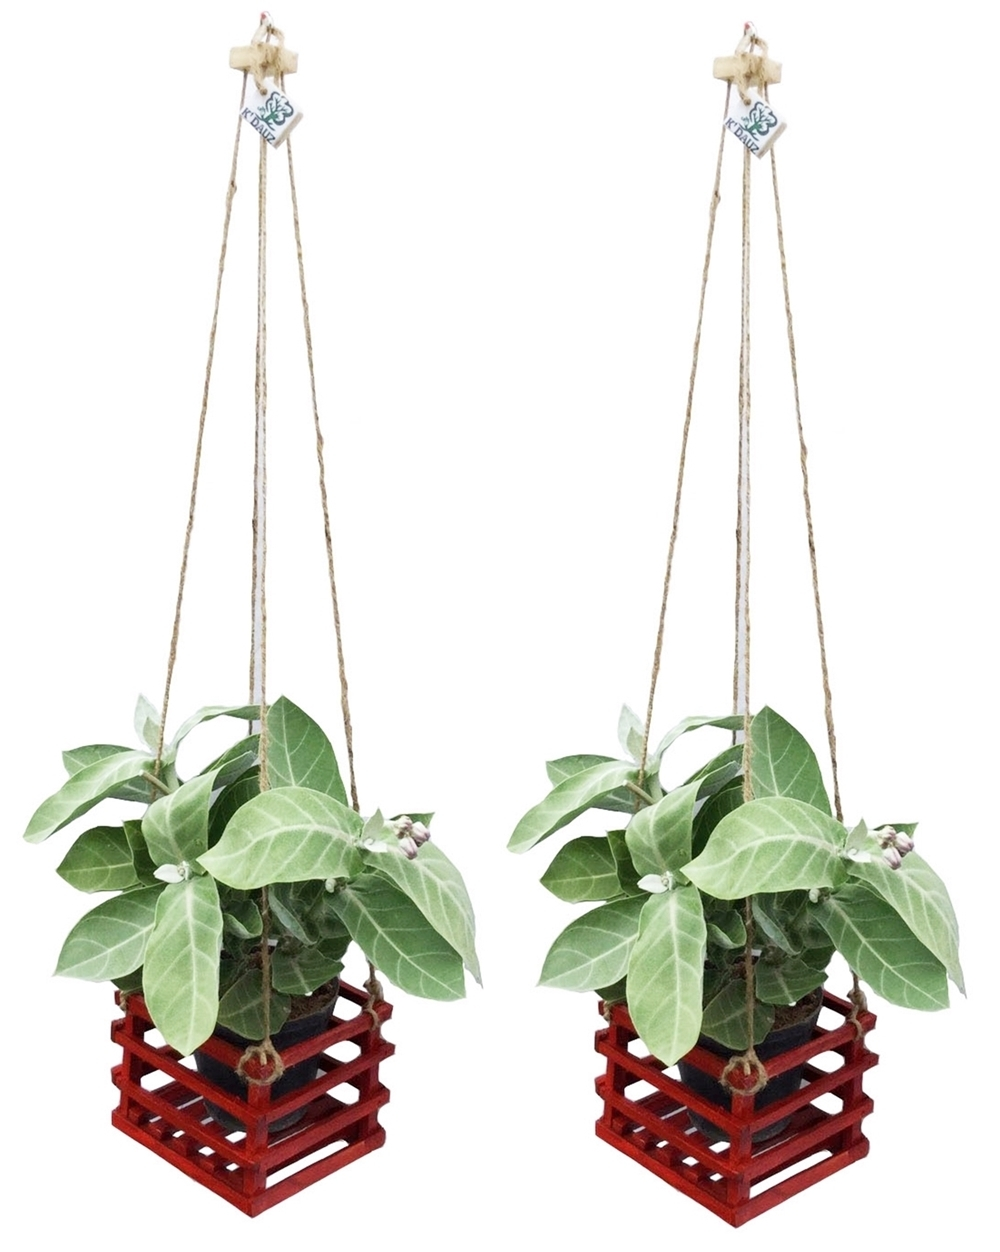 K'DAUZ Set of 2 Hanging Planter Basket Flower Plant Pots Decorative Garden